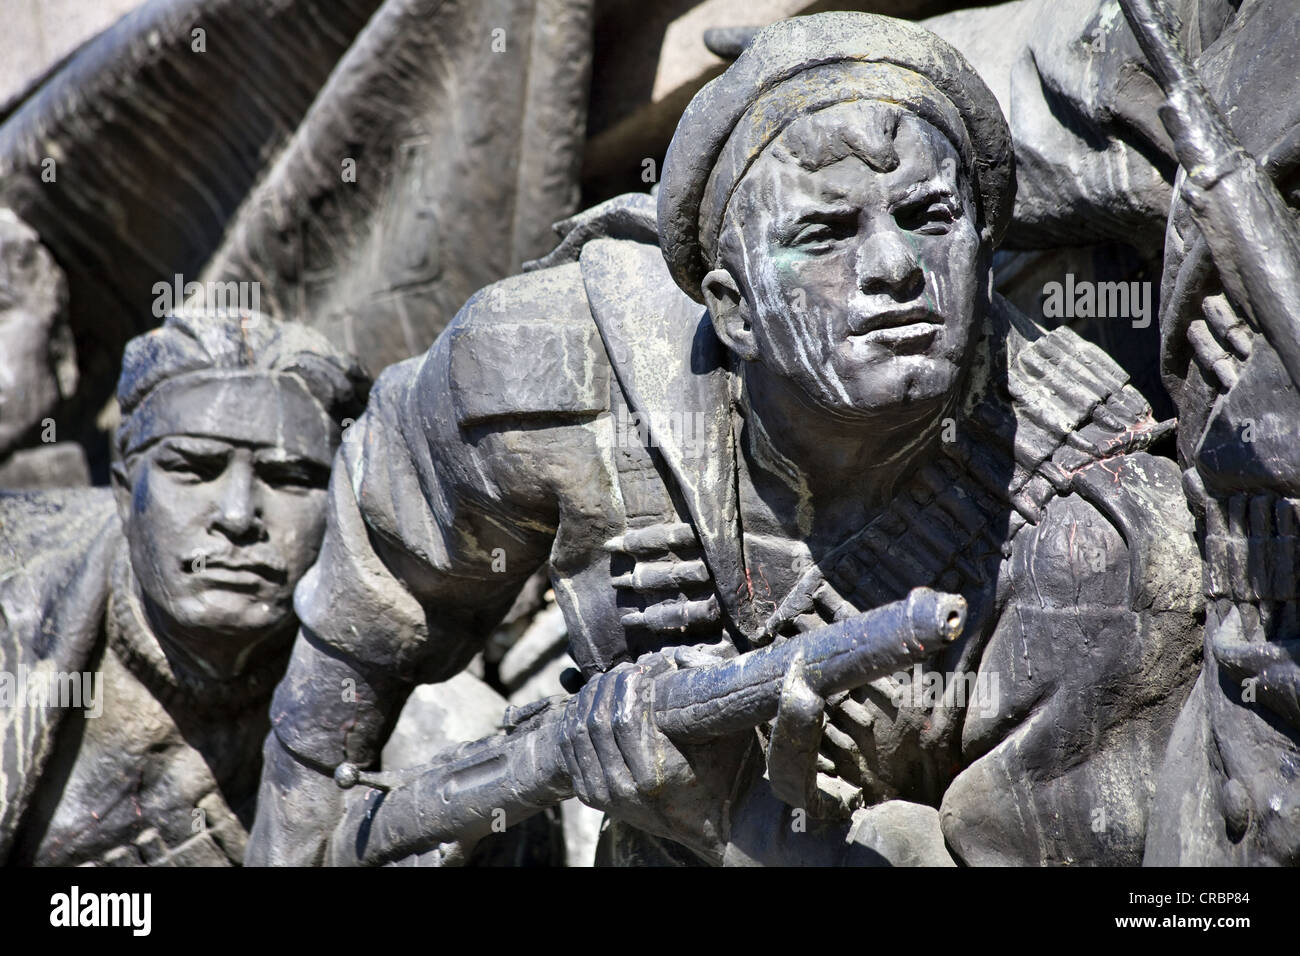 Detail of the Russian Army Monument in Sofia, Bulgaria - Stock Image